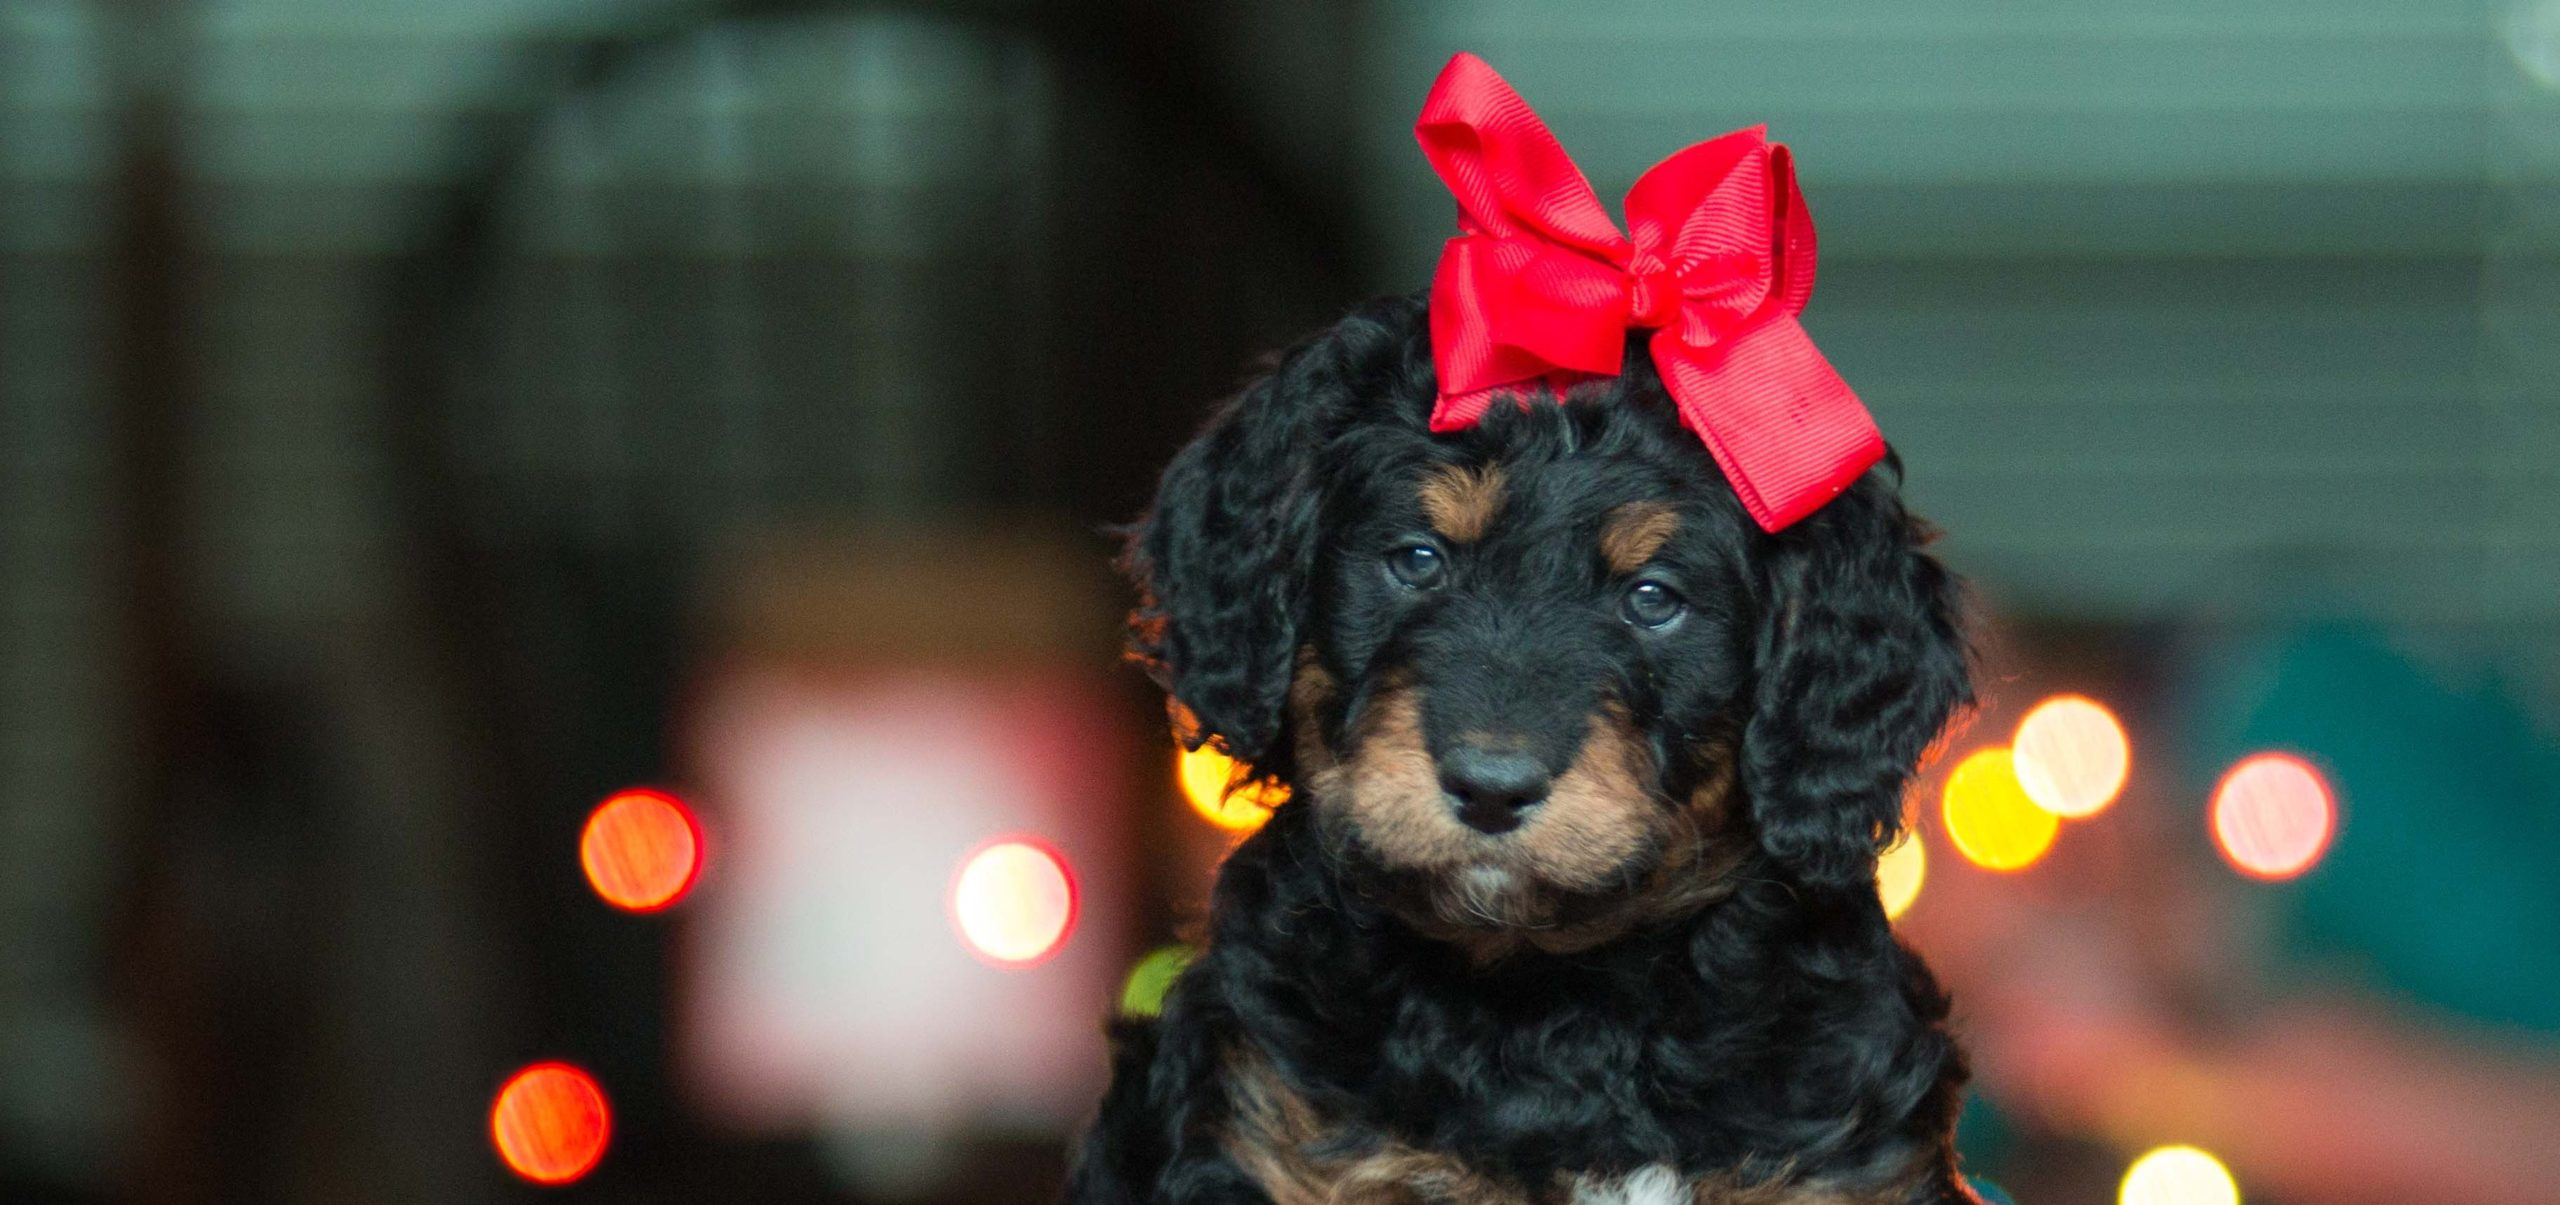 Think Twice Before Giving a Puppy as a Gift